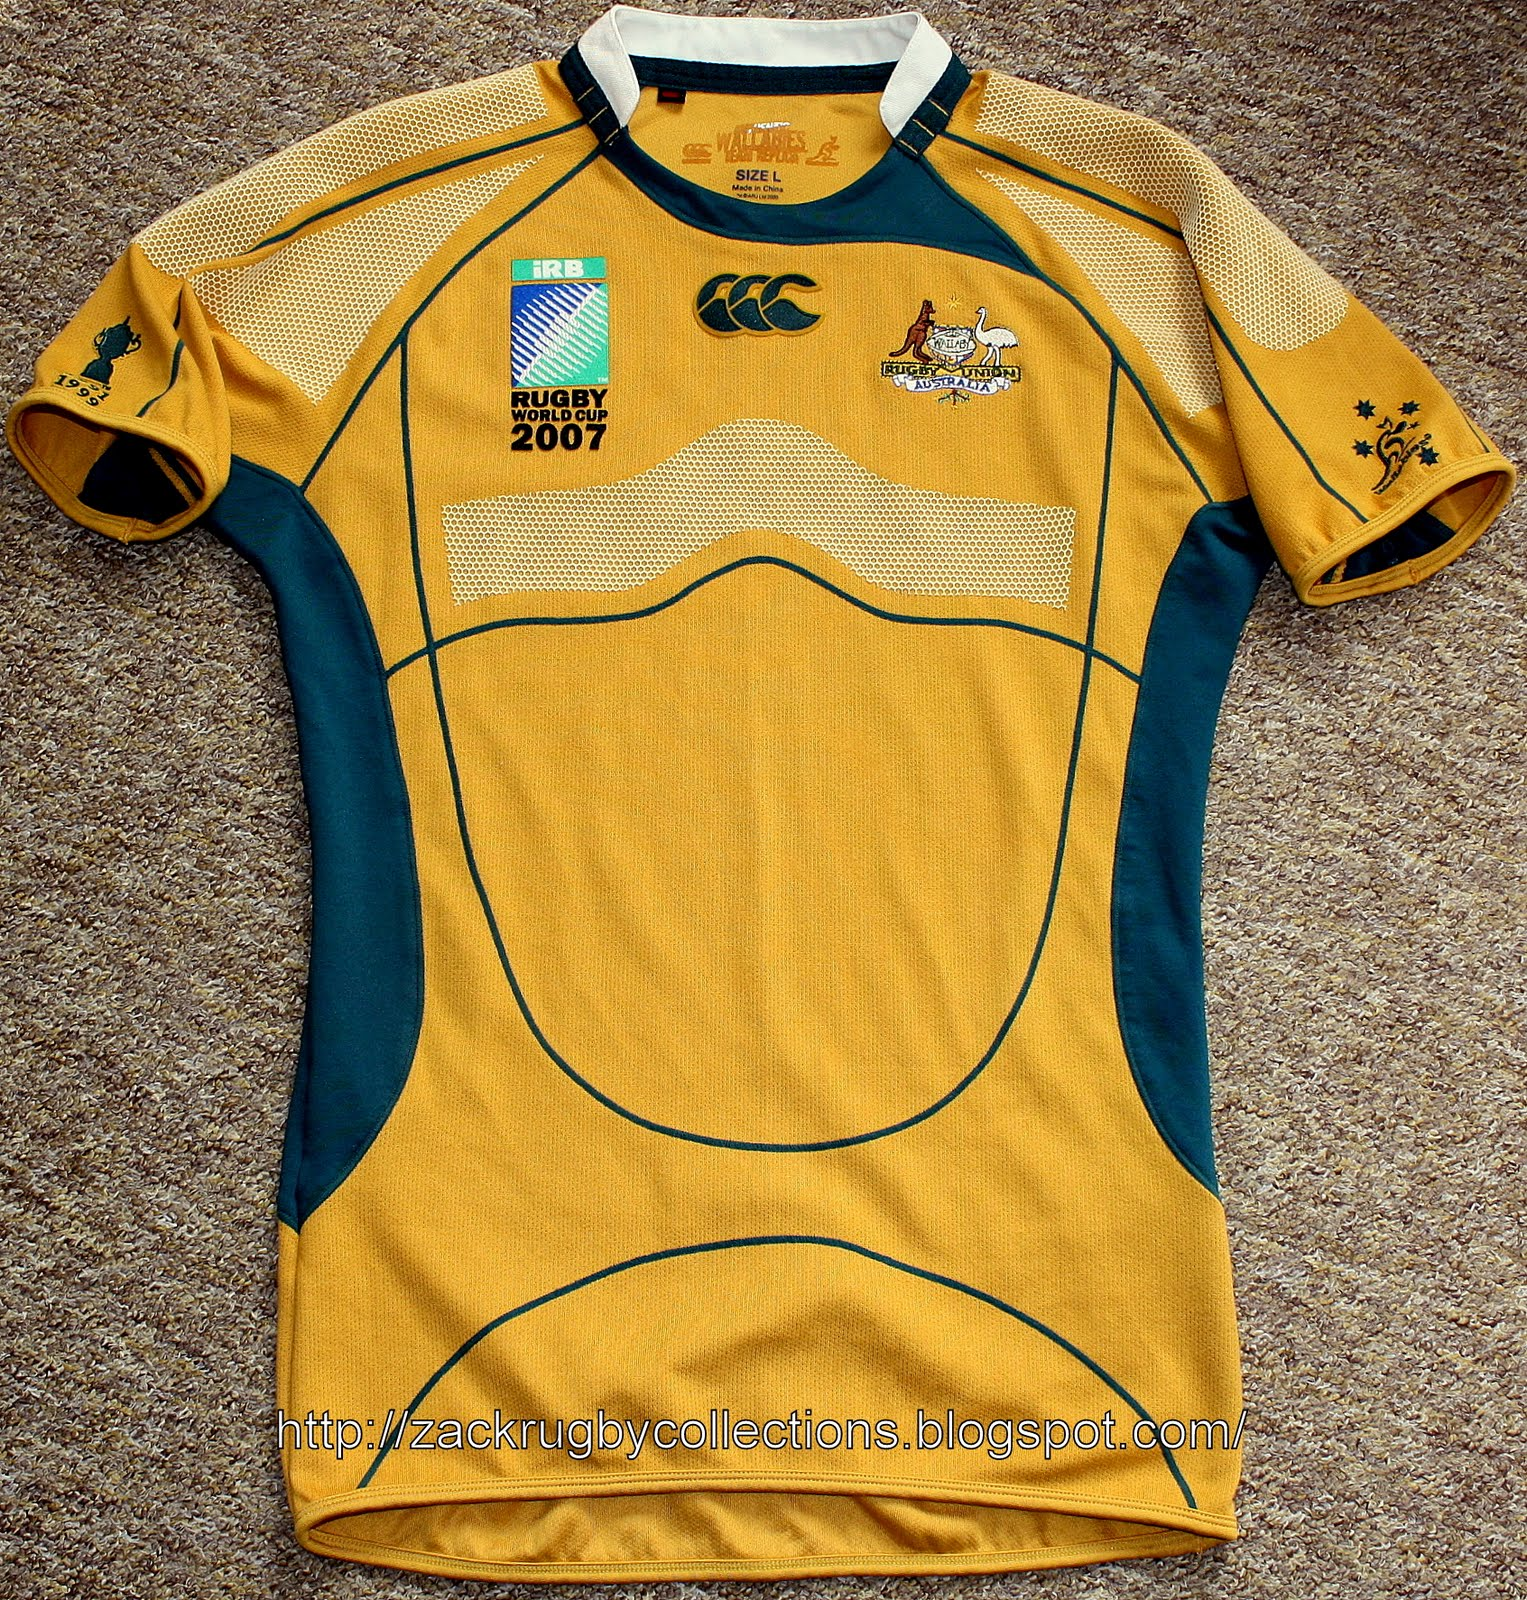 a06901757cc Special Edition: Australia Test (Player Issue) Rugby World Cup 2007 Jersey